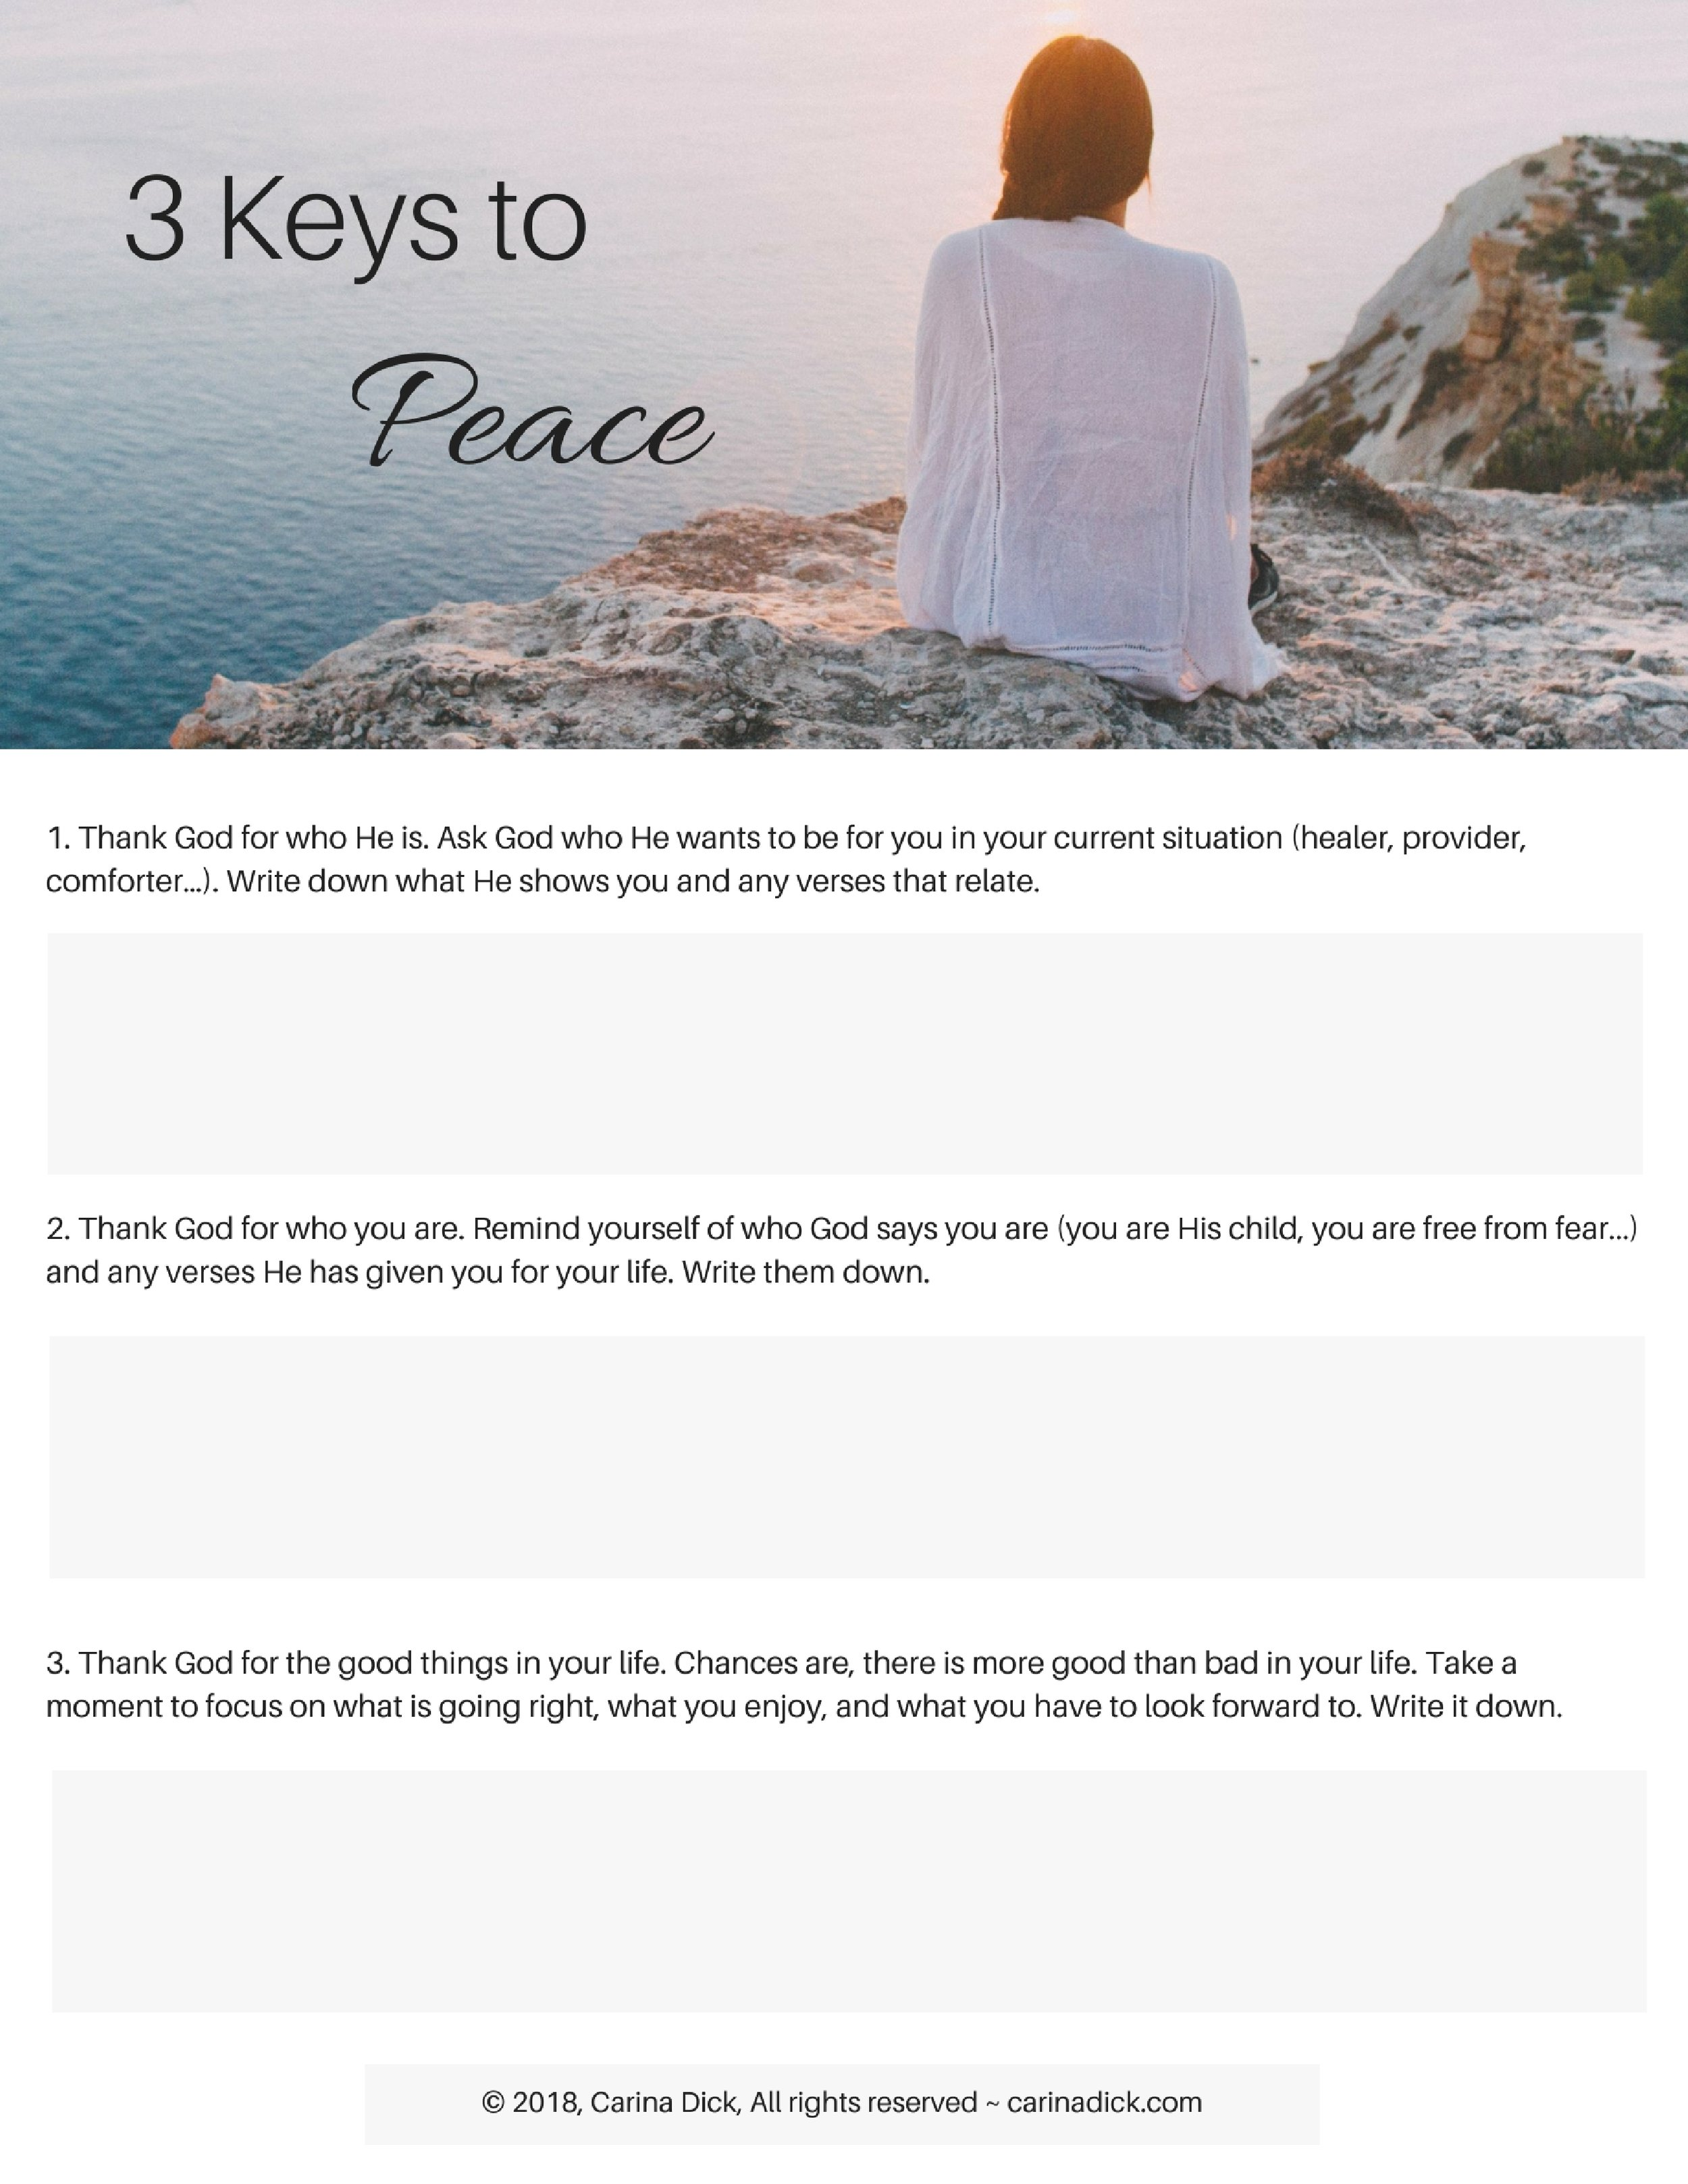 Image 3 Keys to Peace Worksheet.jpg